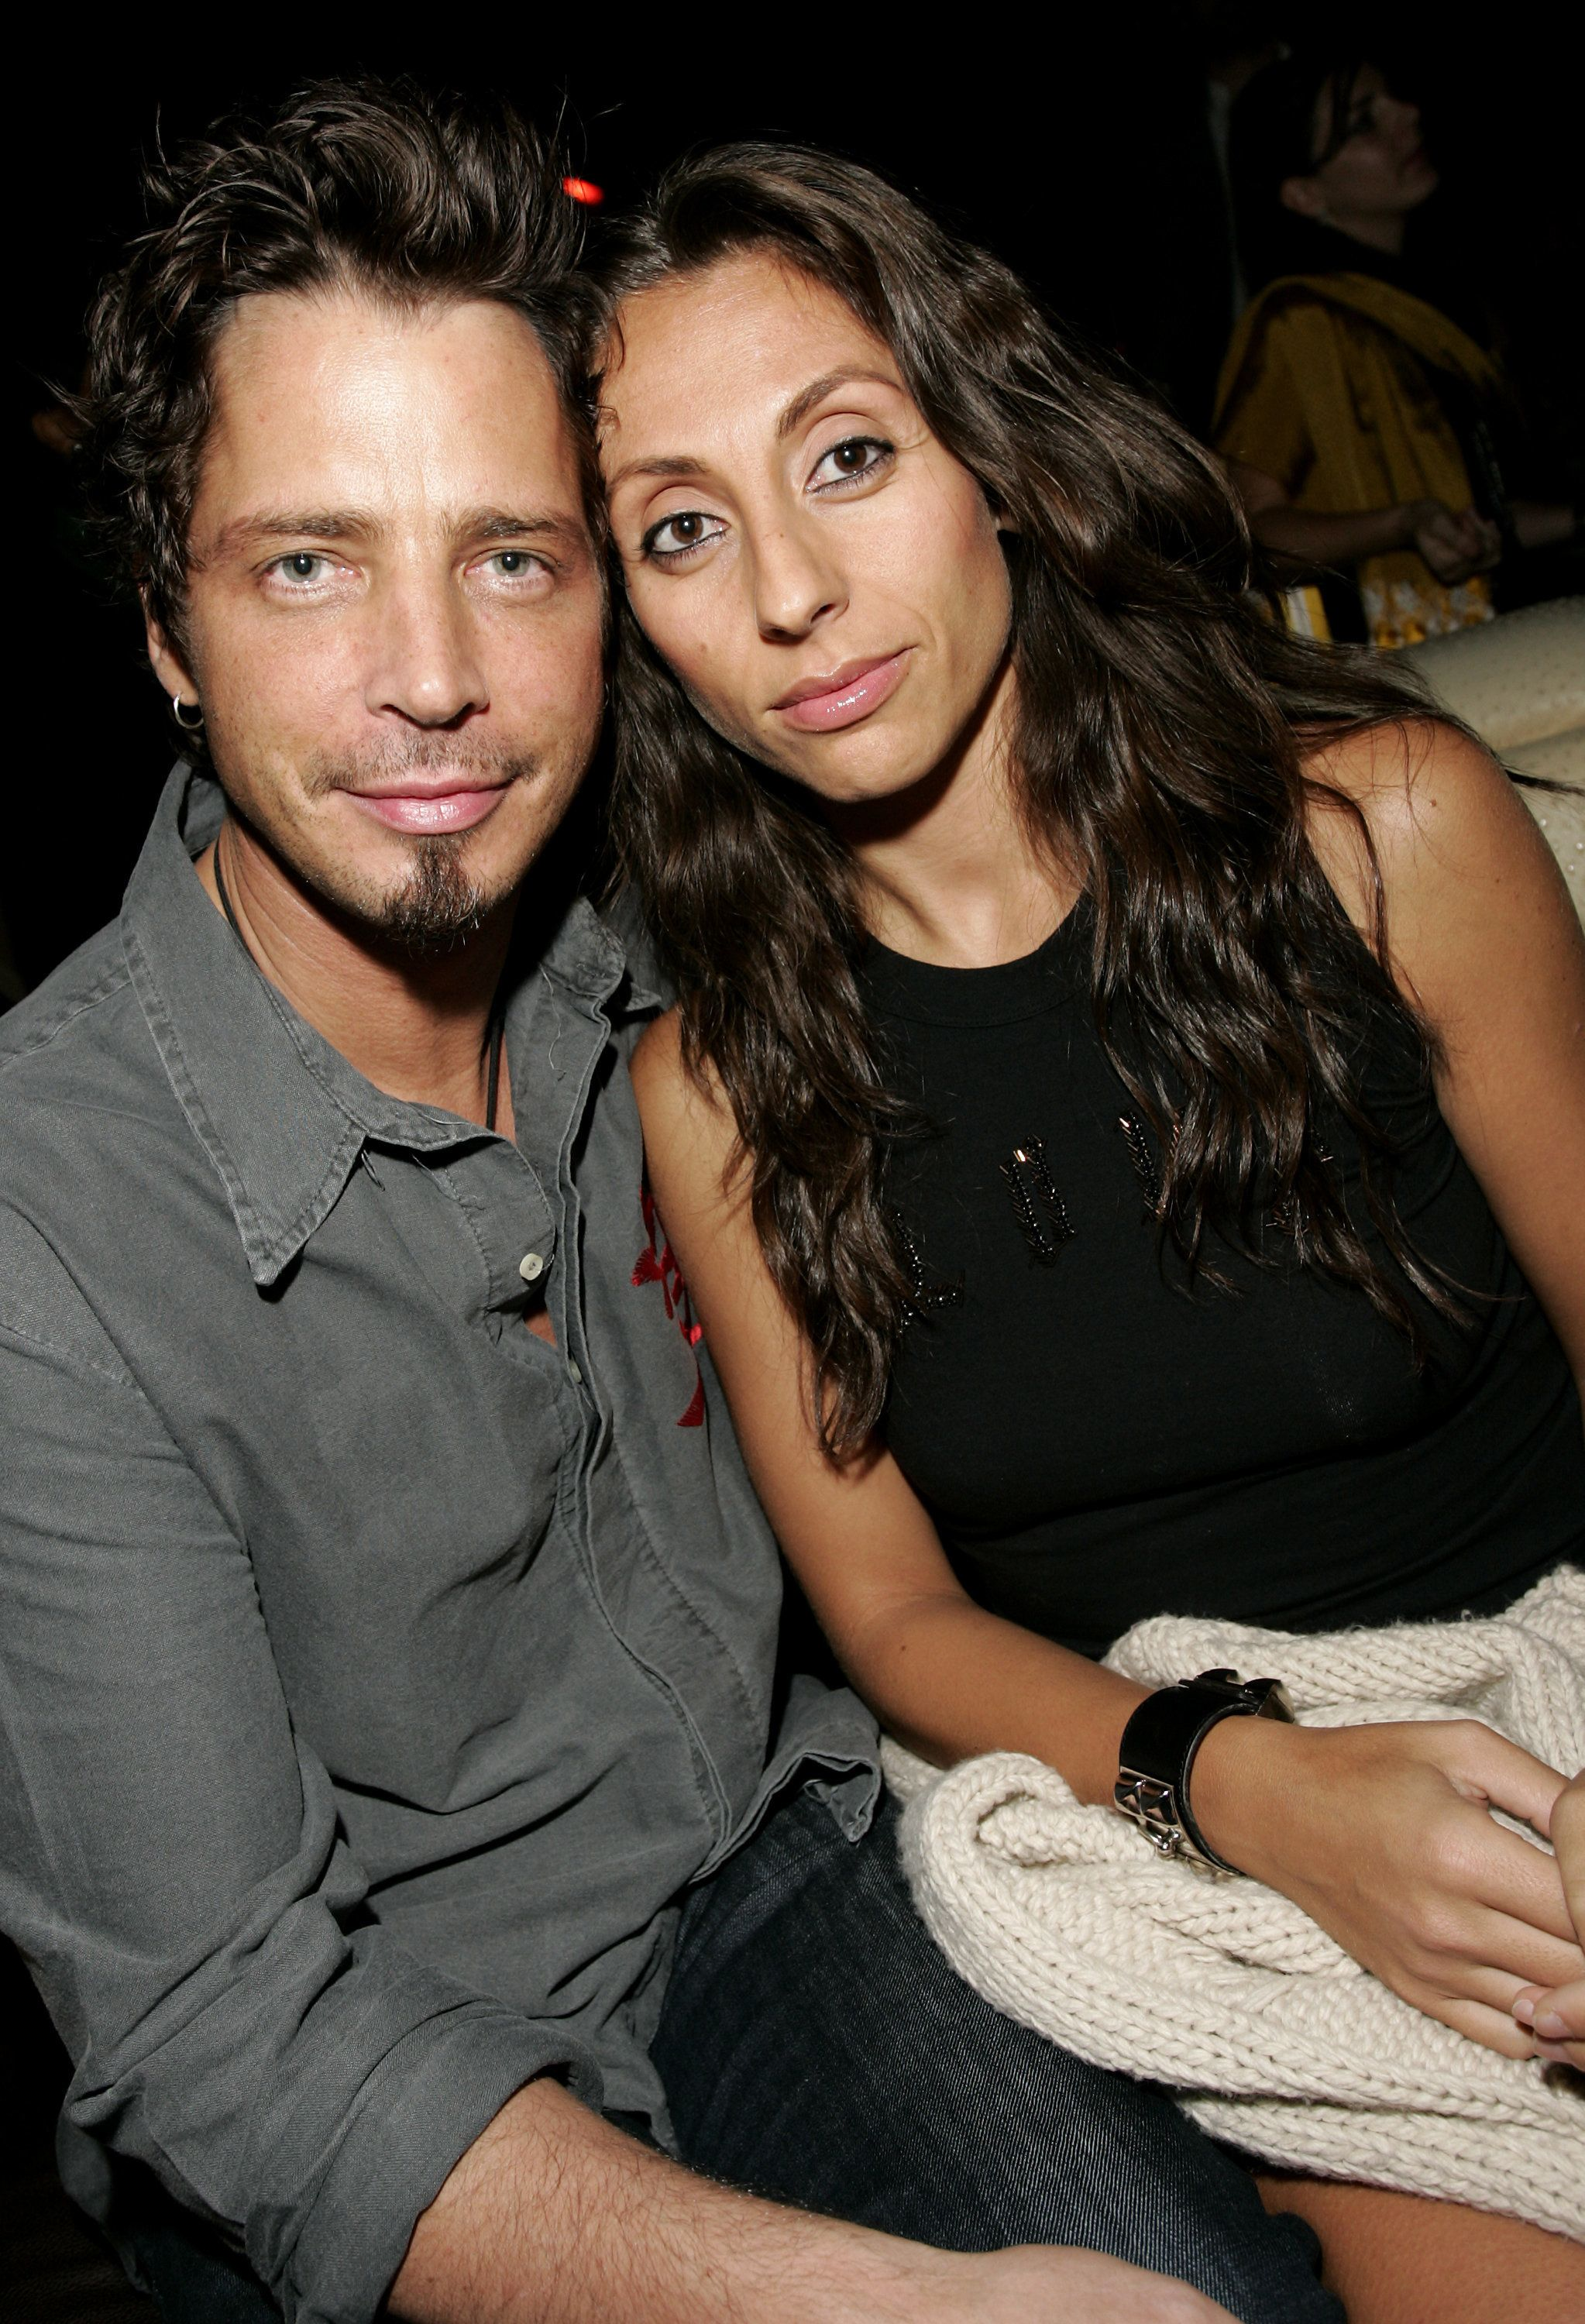 Chris Cornell and Vicky Cornell together in